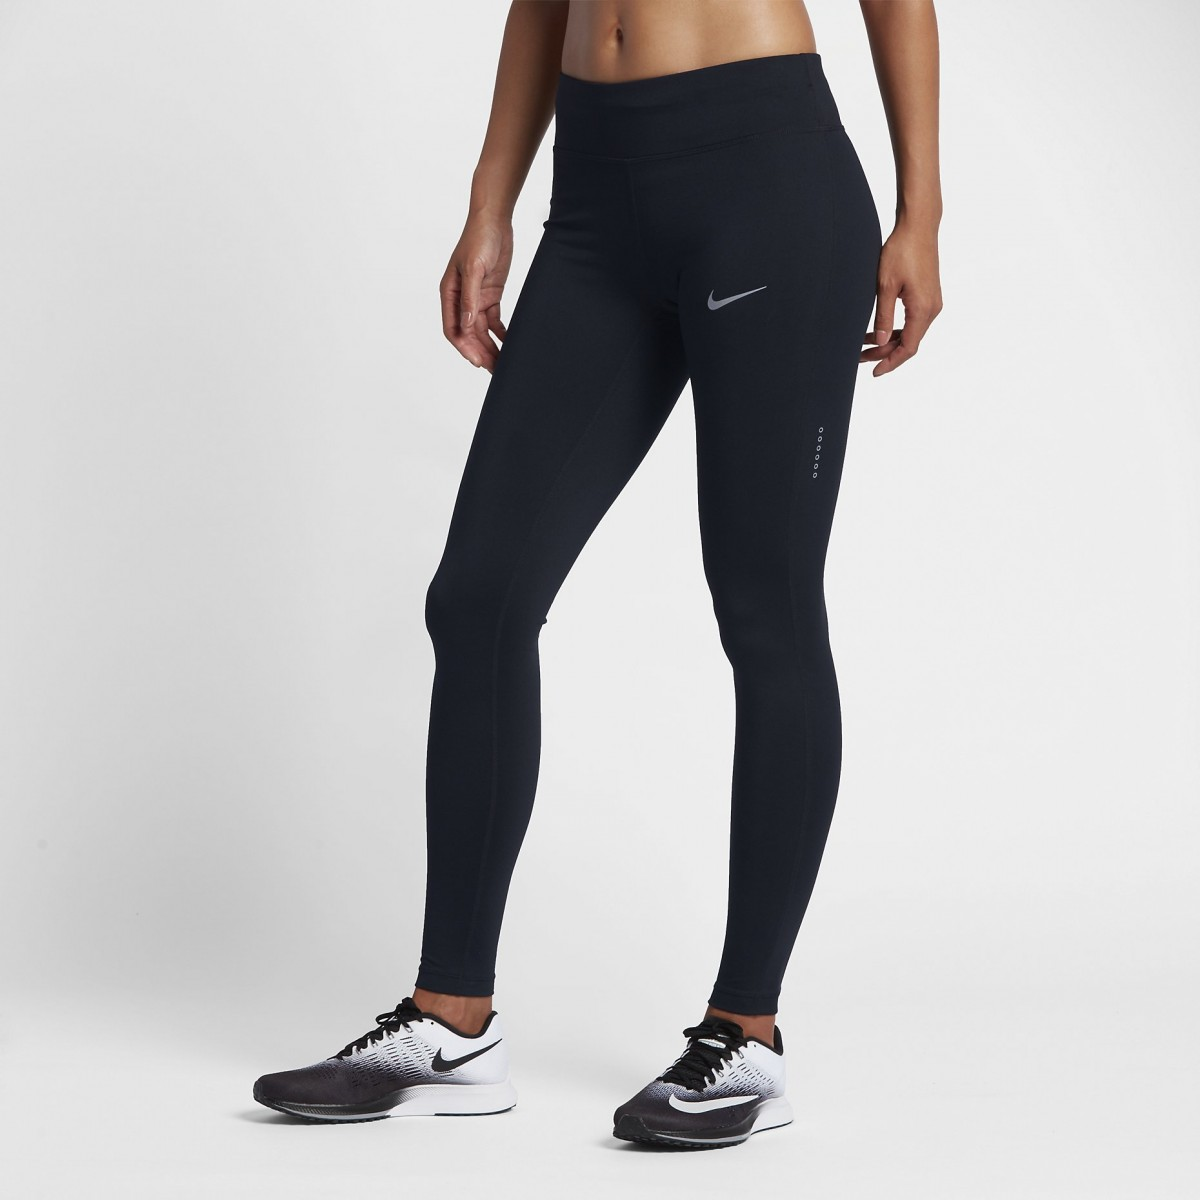 Bizz Store - Calça Legging Feminina Nike Power Essential Tights 824fbada22504